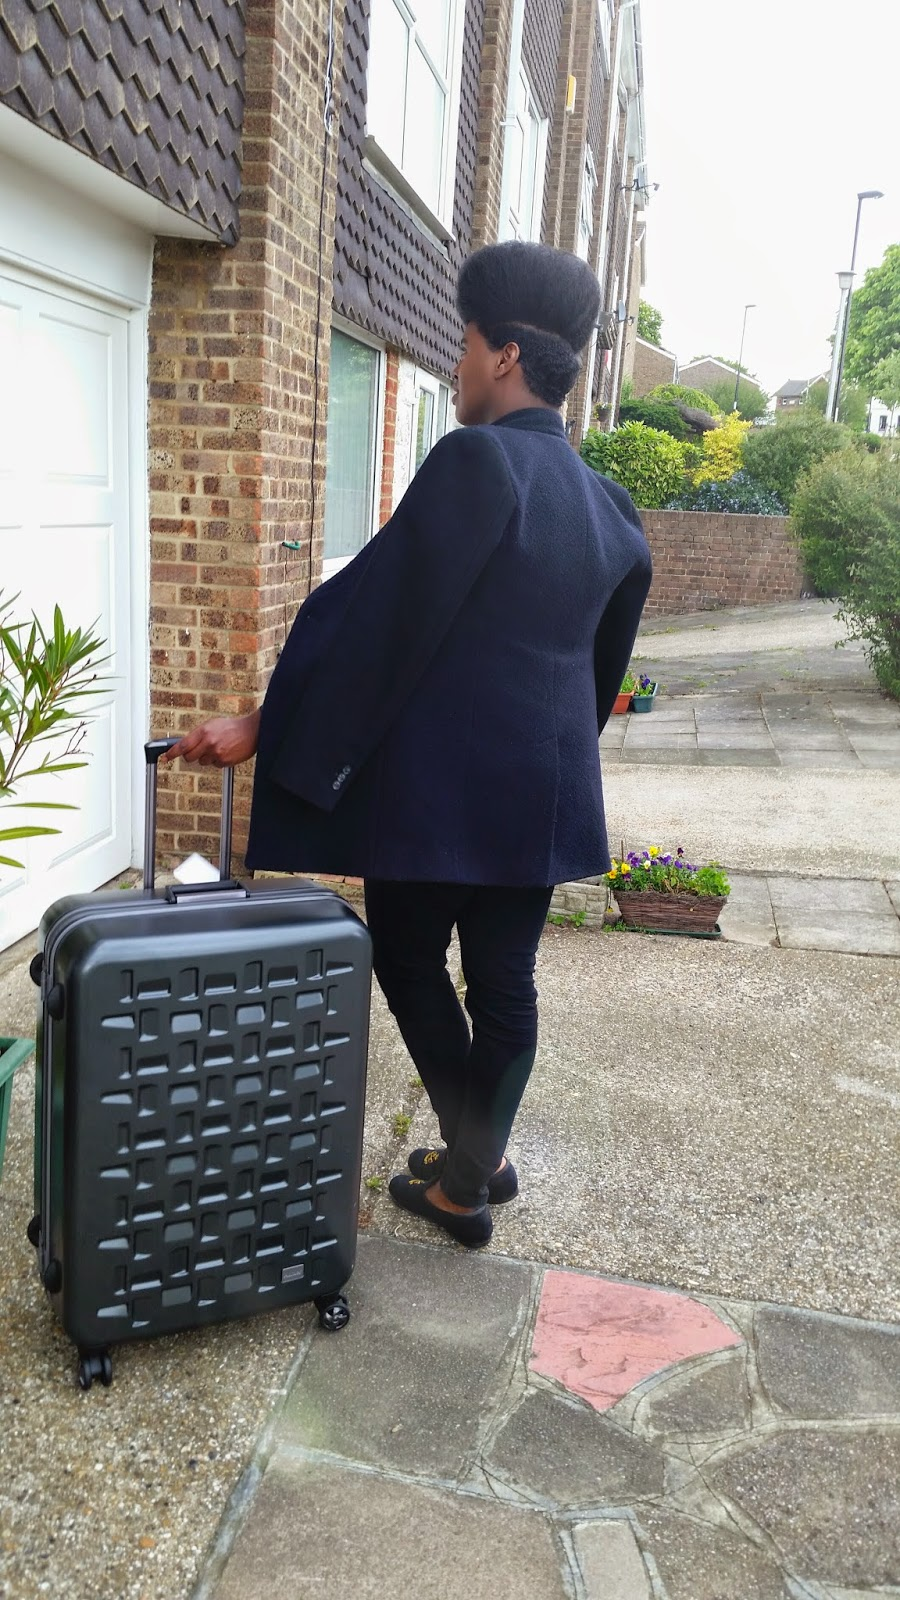 http://www.antler.co.uk/collections/alexus/alexus-large-suitcase